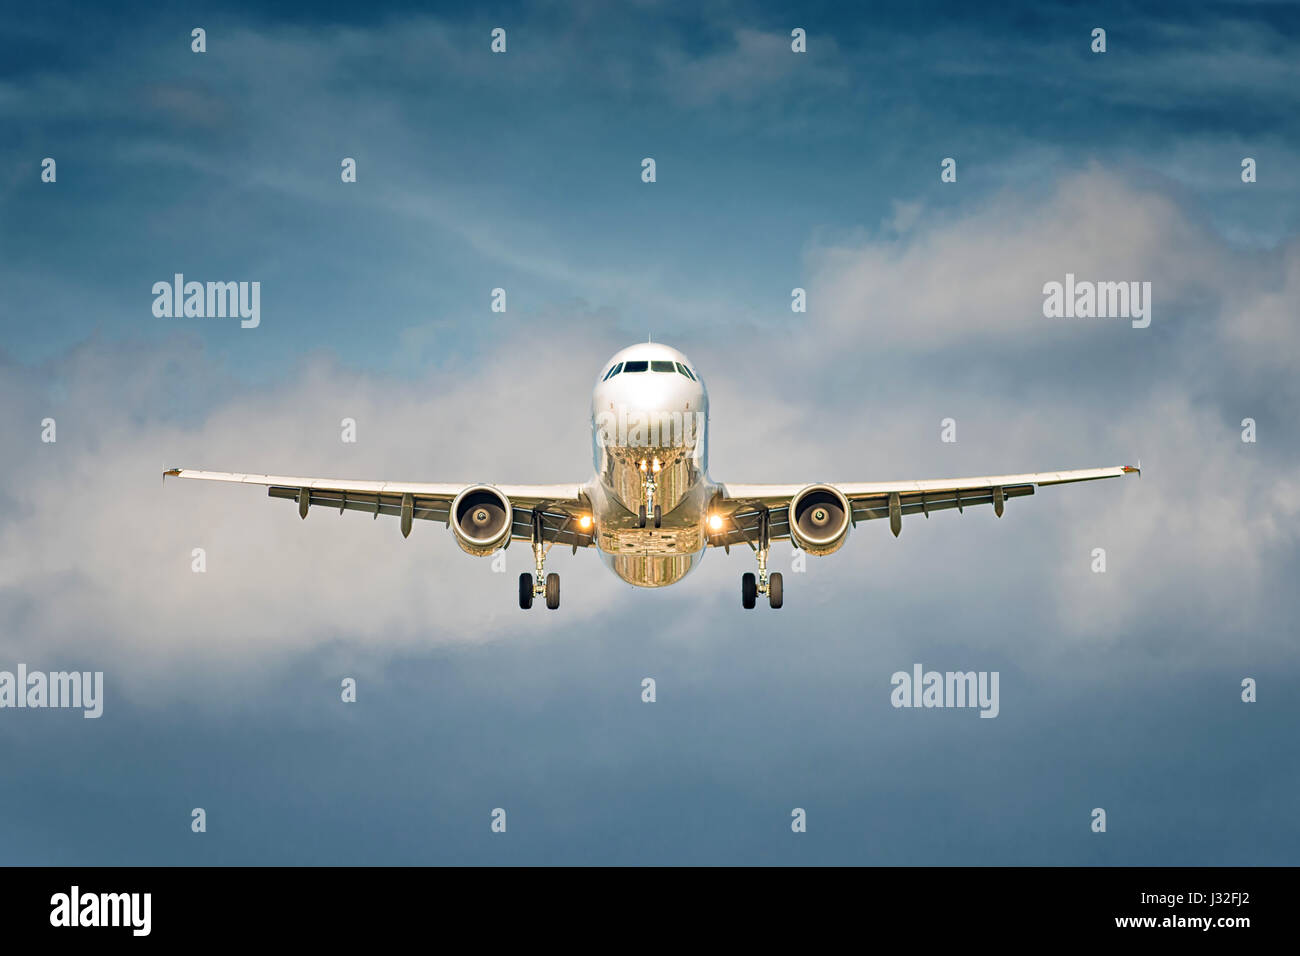 Front view of a big jet plane taking off on blue cloudy sky background Stock Photo